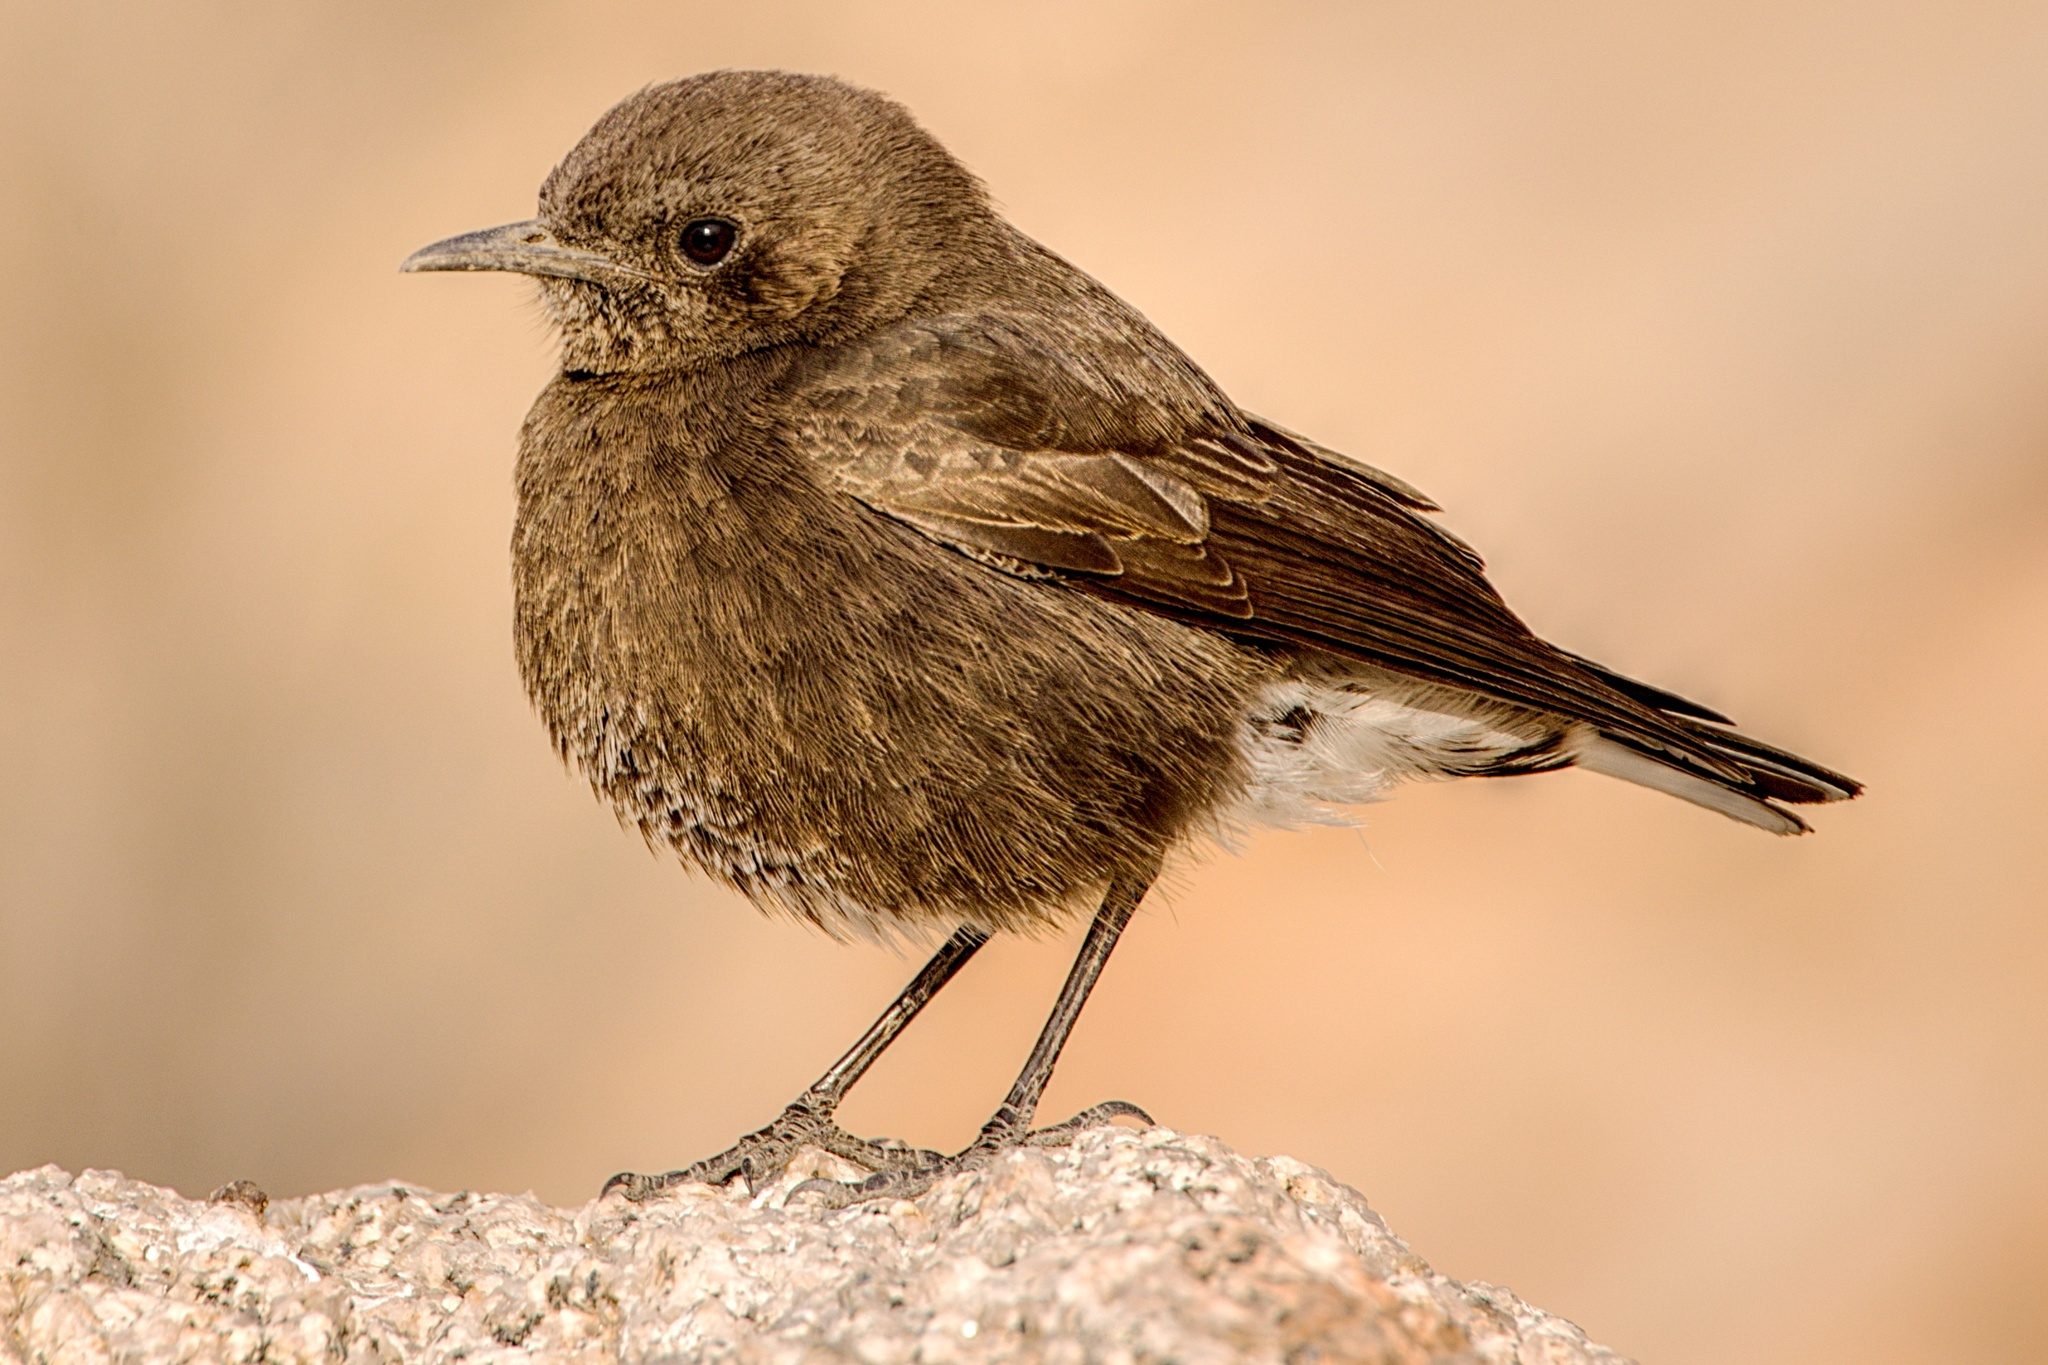 Juvenile Mountain Wheatear.  Occur in the Namib Desert by Harrold Page